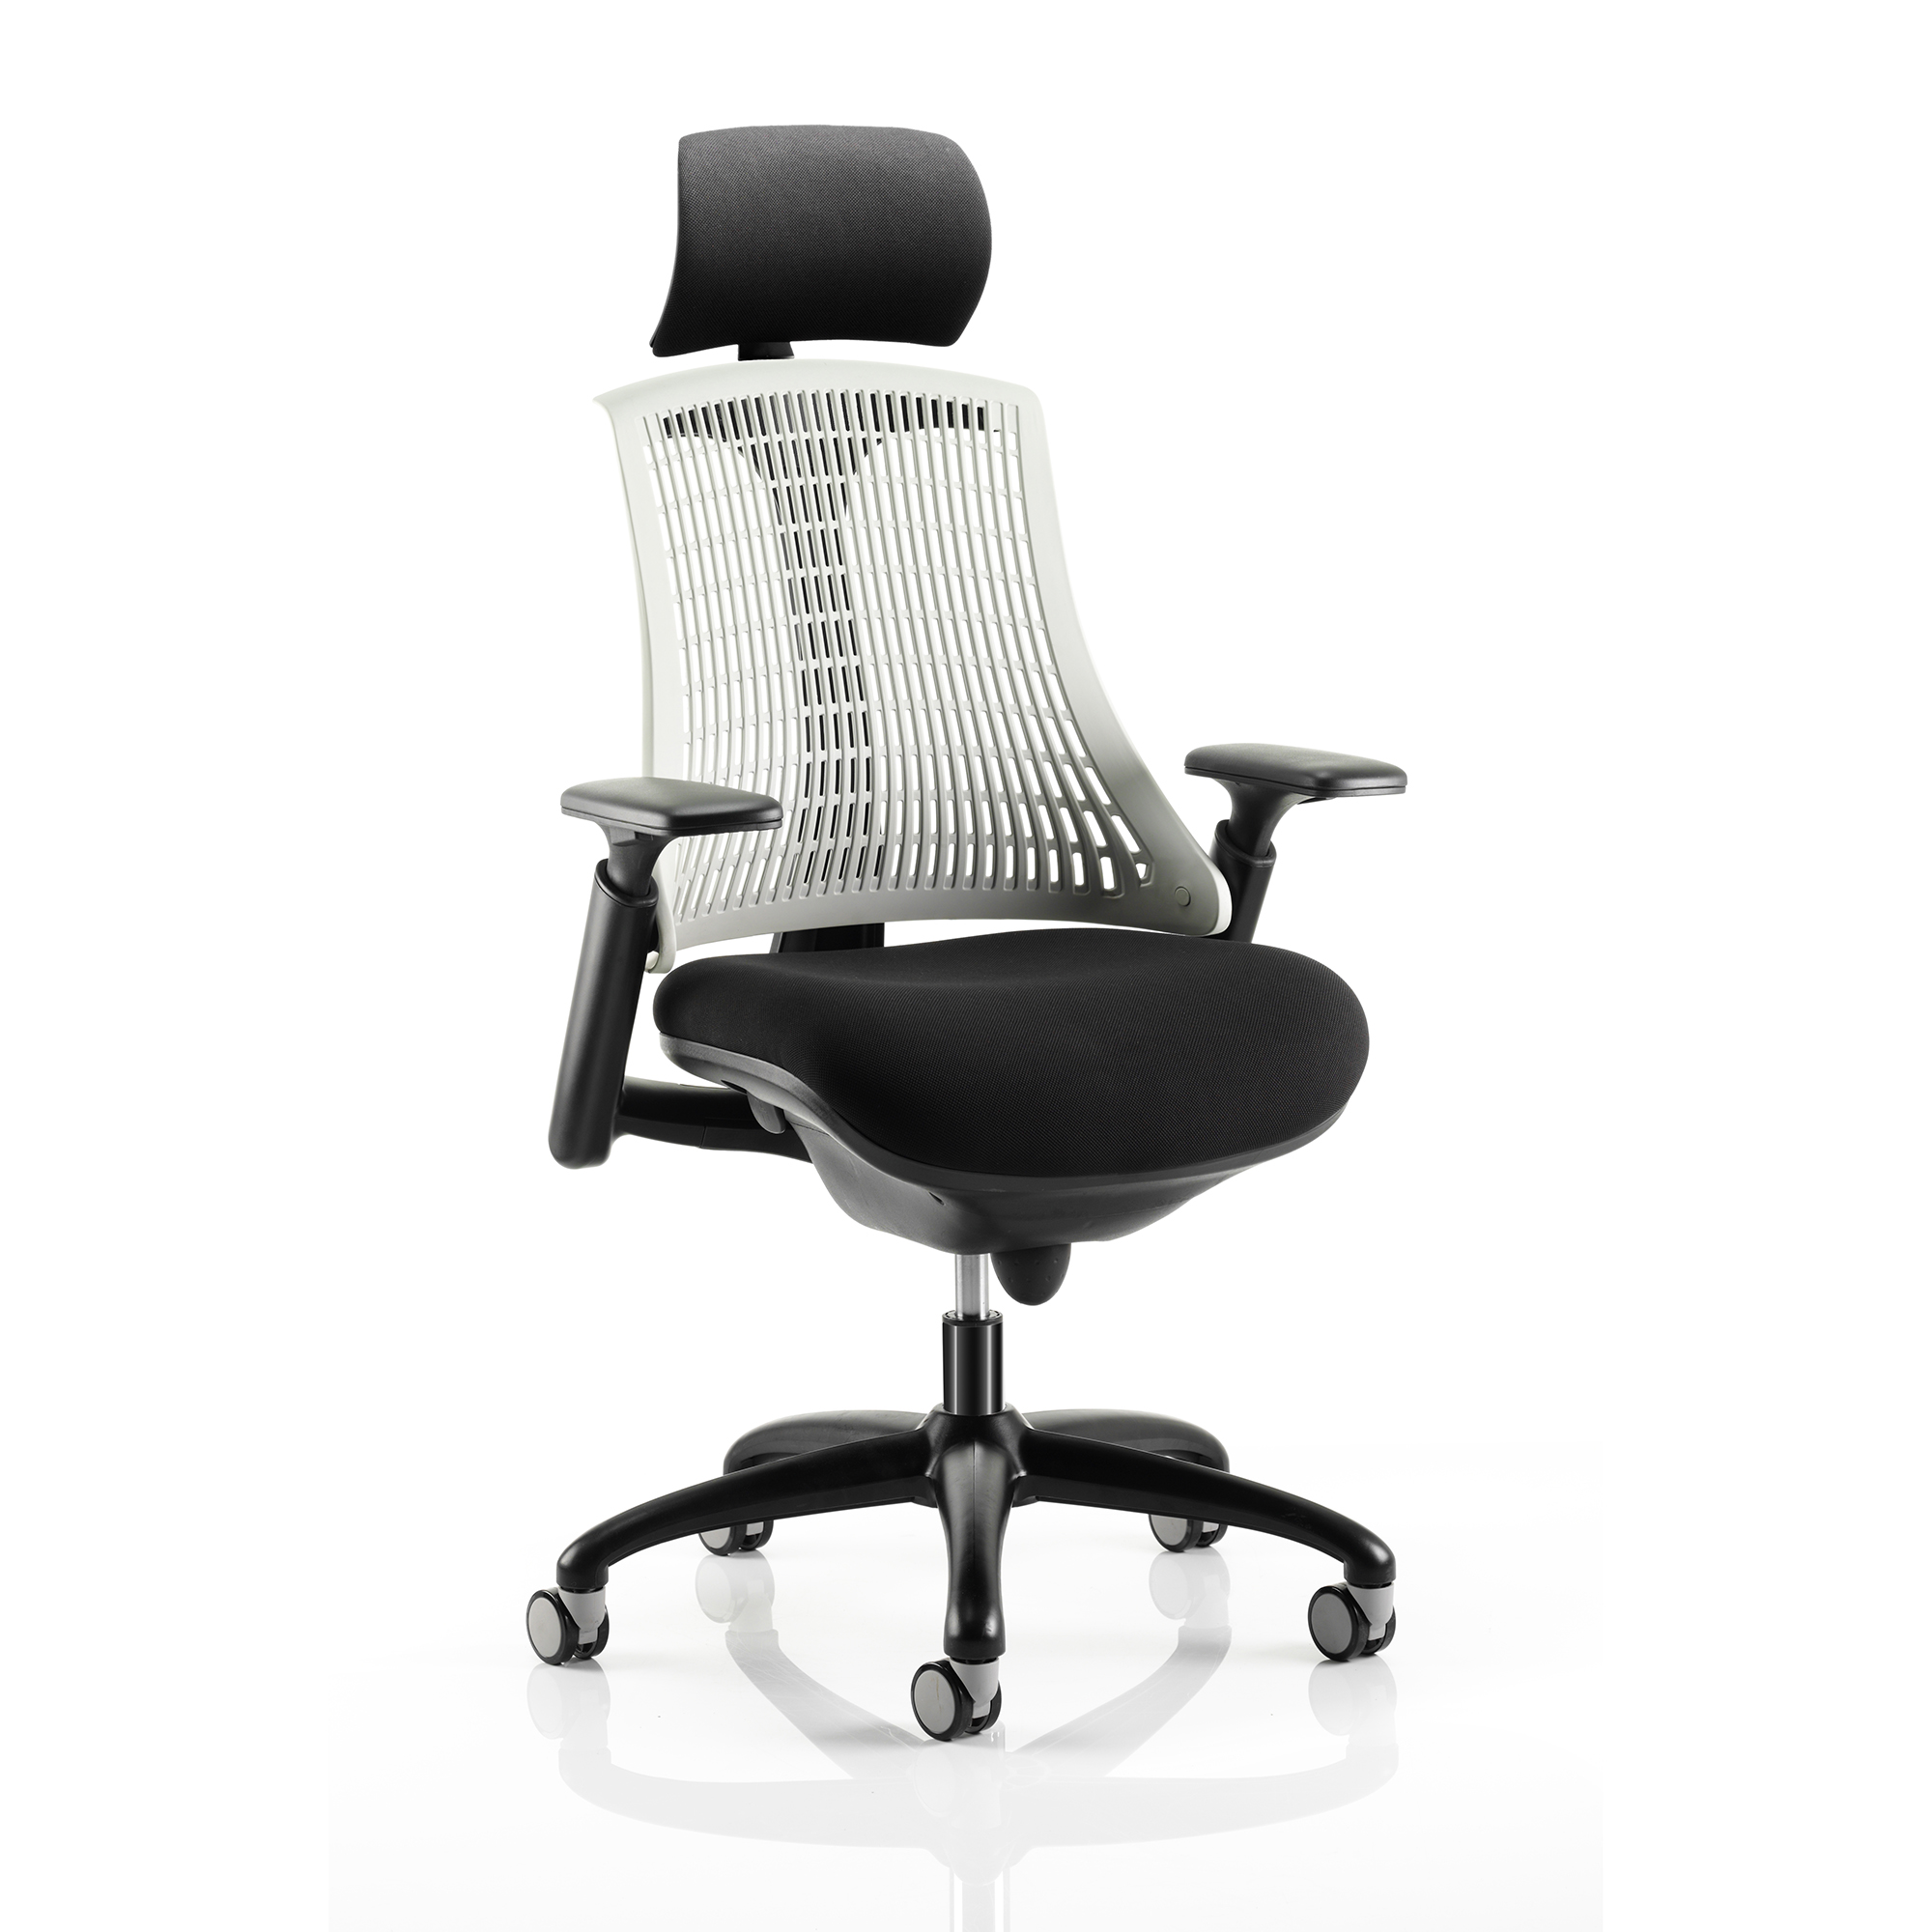 Trexus Flex Task Operator Chair With Arms And Headrest Blk Fabric Seat MstoneWhtBack Blk Frame Ref KC0104